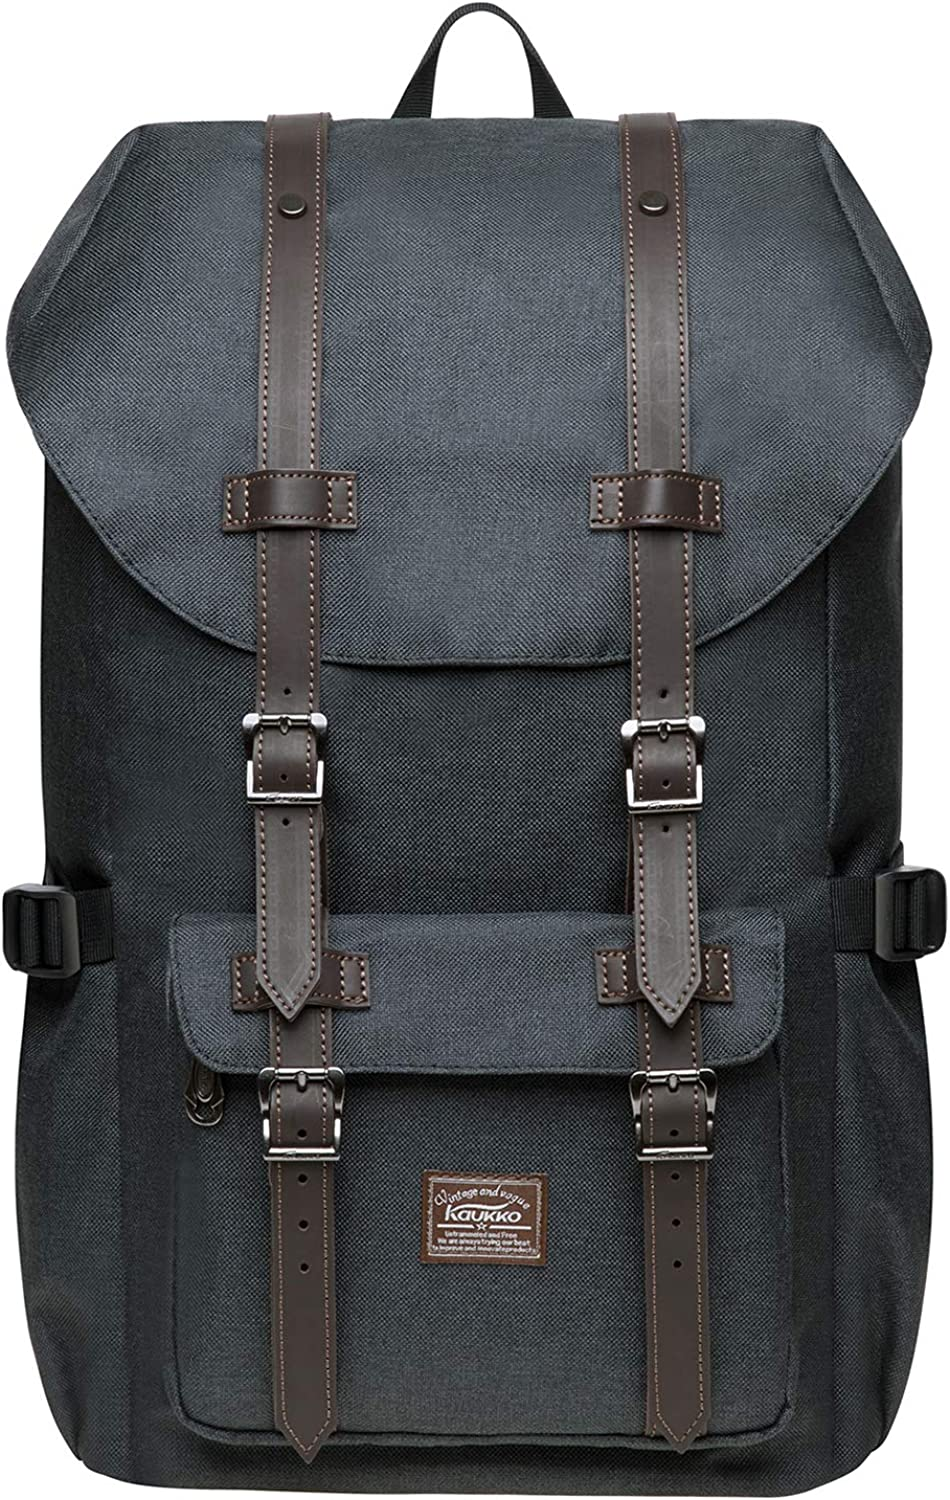 KAUKKO Laptop Outdoor Backpack, Traveling Rucksack Fits 15.6 Inch Laptop